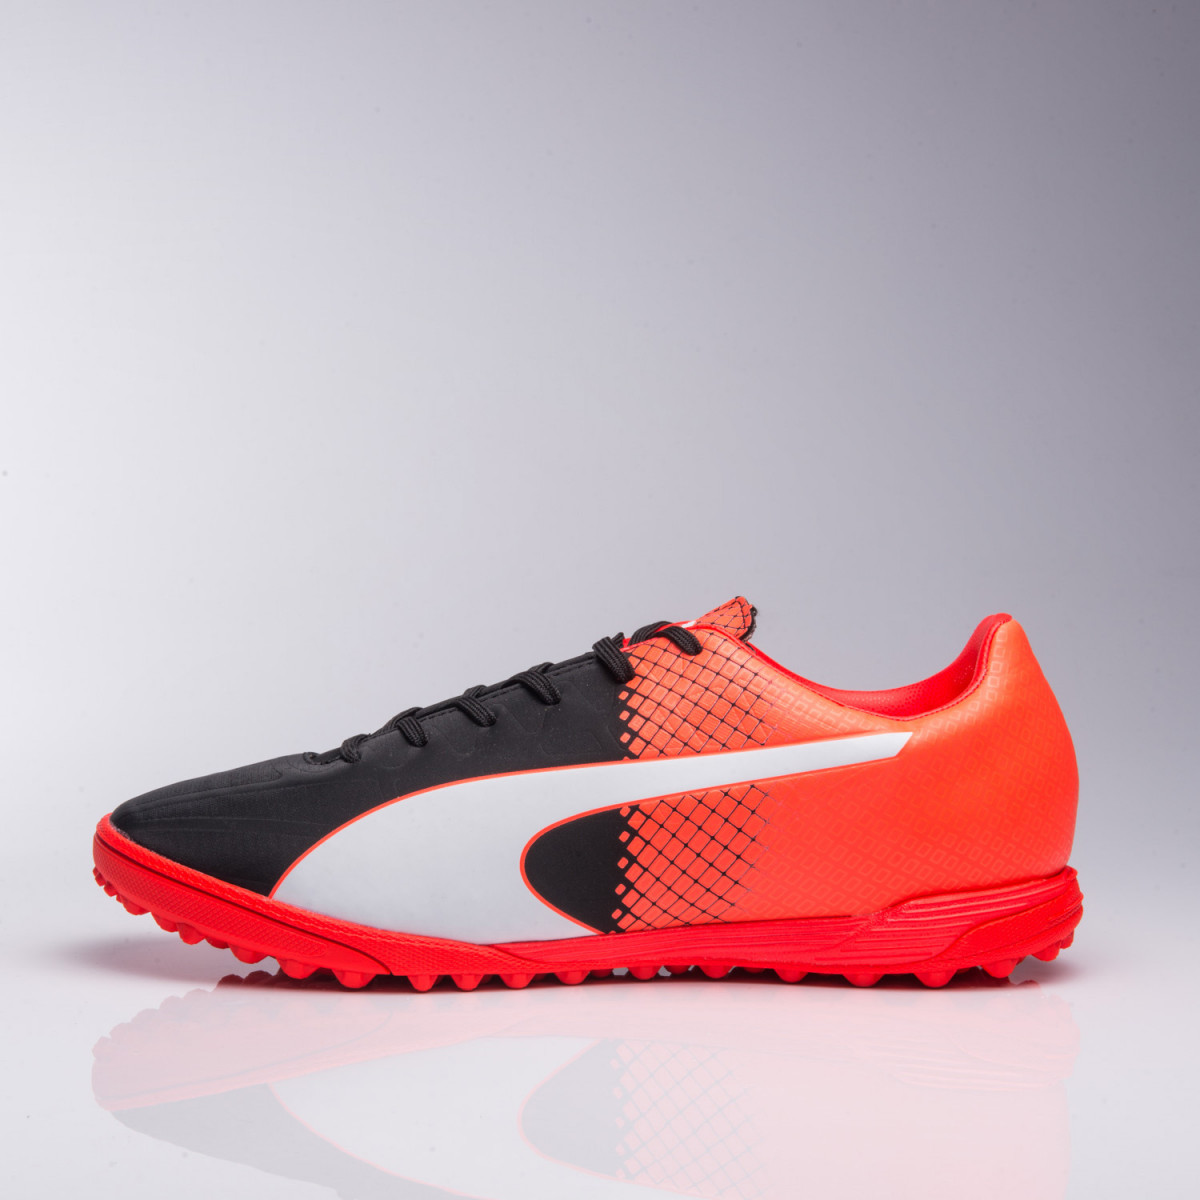 BOTINES PUMA EVOSPEED 4.5 TRICKS TT